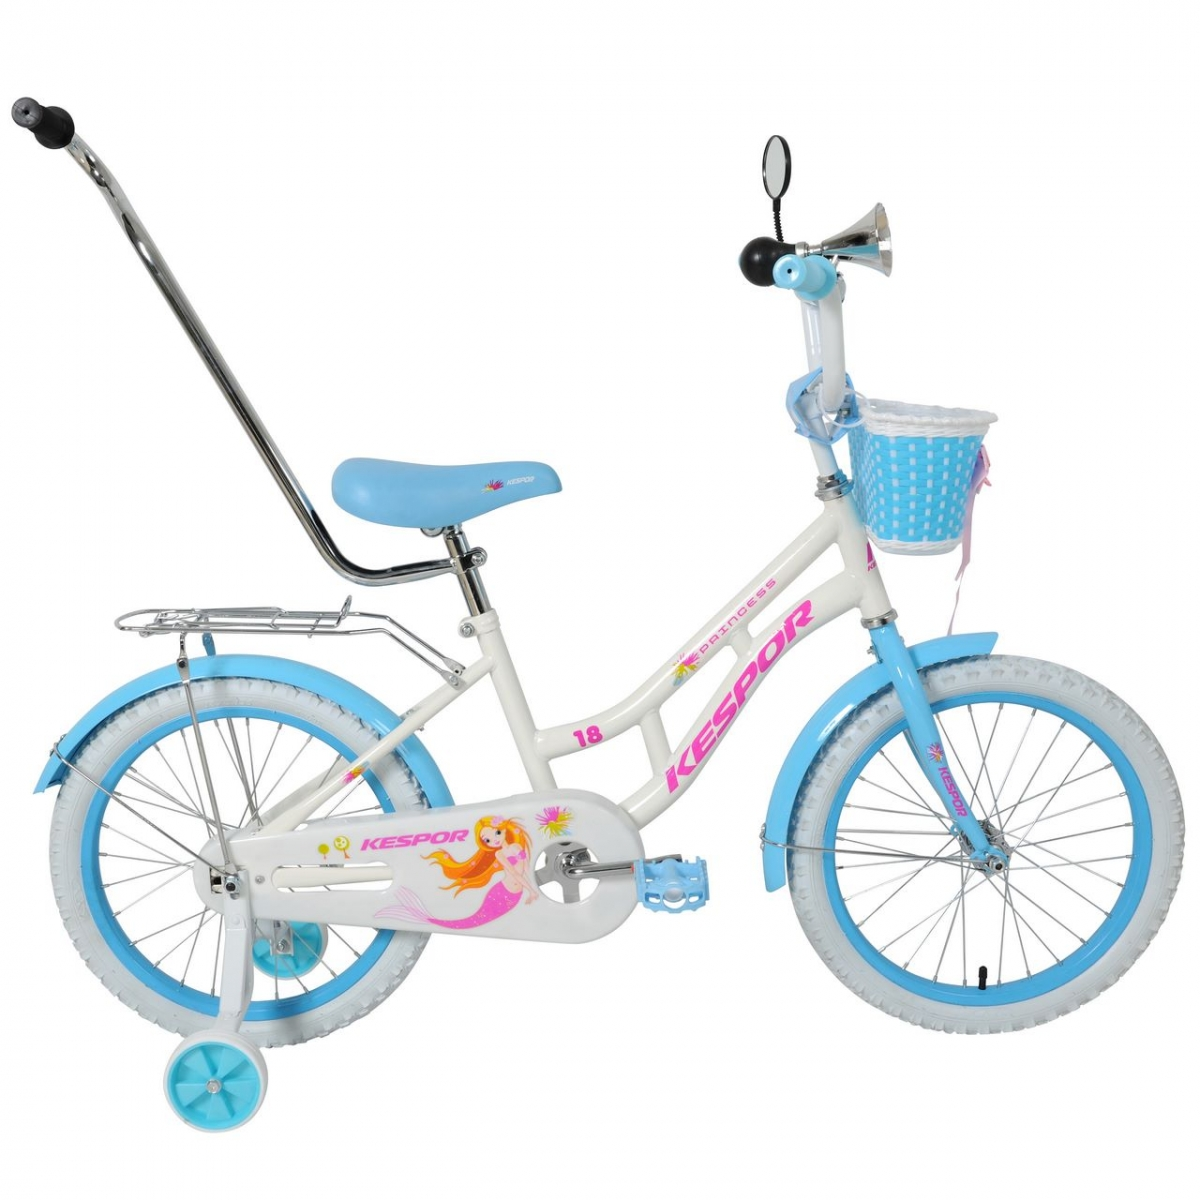 "велосипед kespor 18"" princess белый"